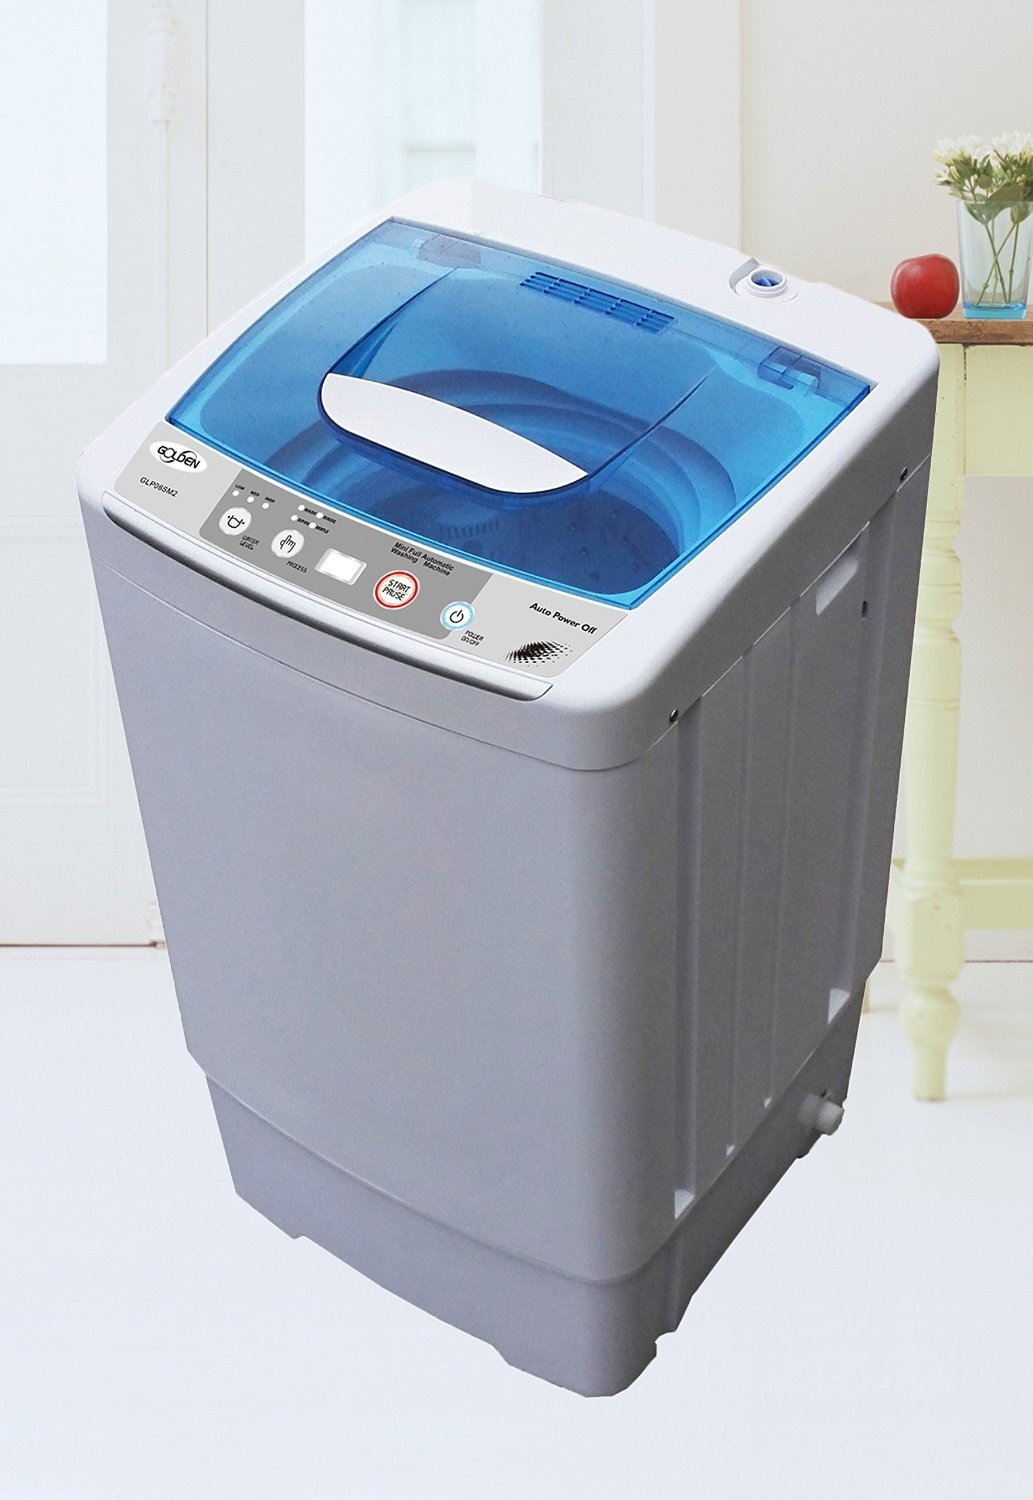 Golden Portable Washer Machine (0.78 Cf - 6.2 Lbs) Mini Washing Machine Automatic GLP06SM2 - White